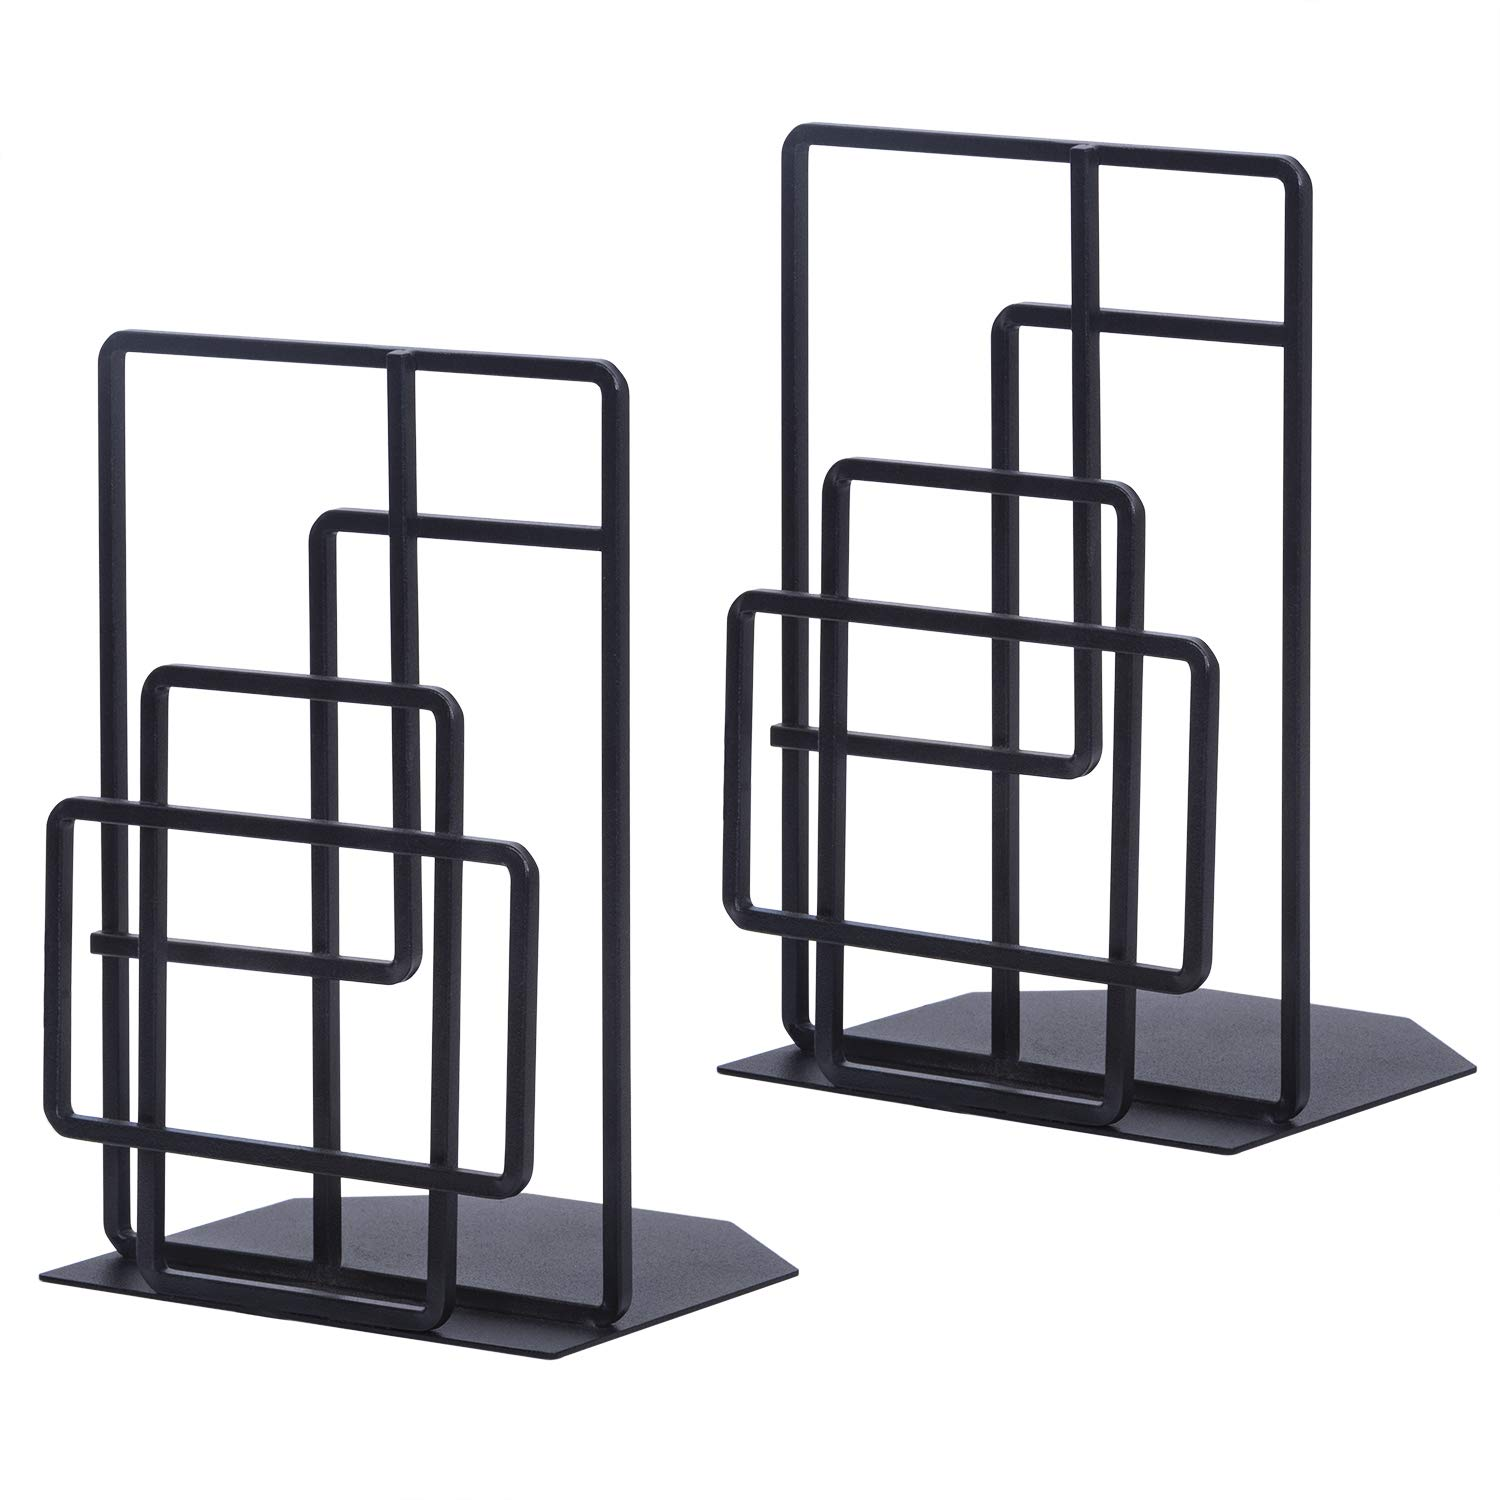 SRIWATANA Book Ends Heavy Duty, Decorative Black Bookends for Shelves